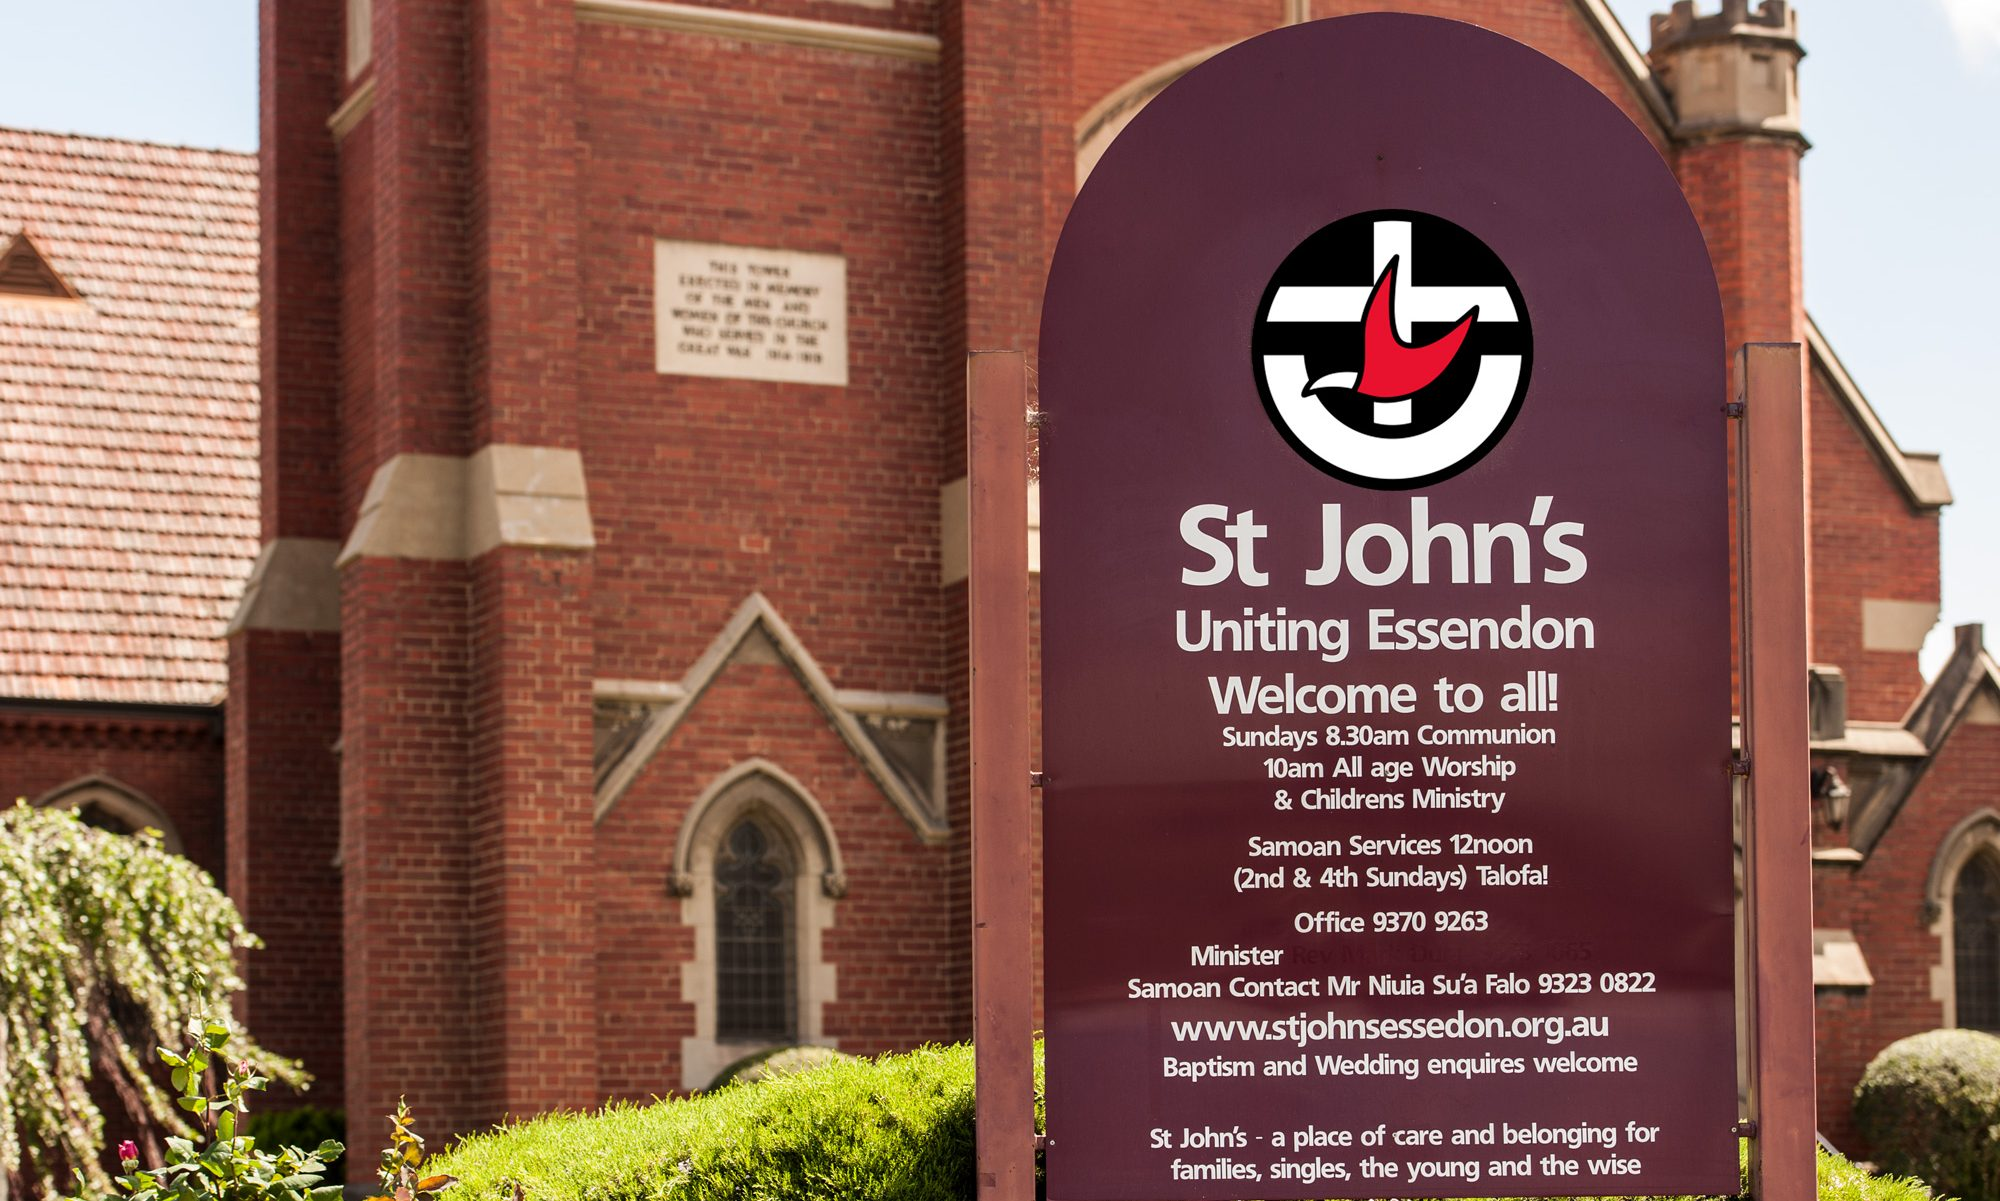 St John's Uniting Essendon